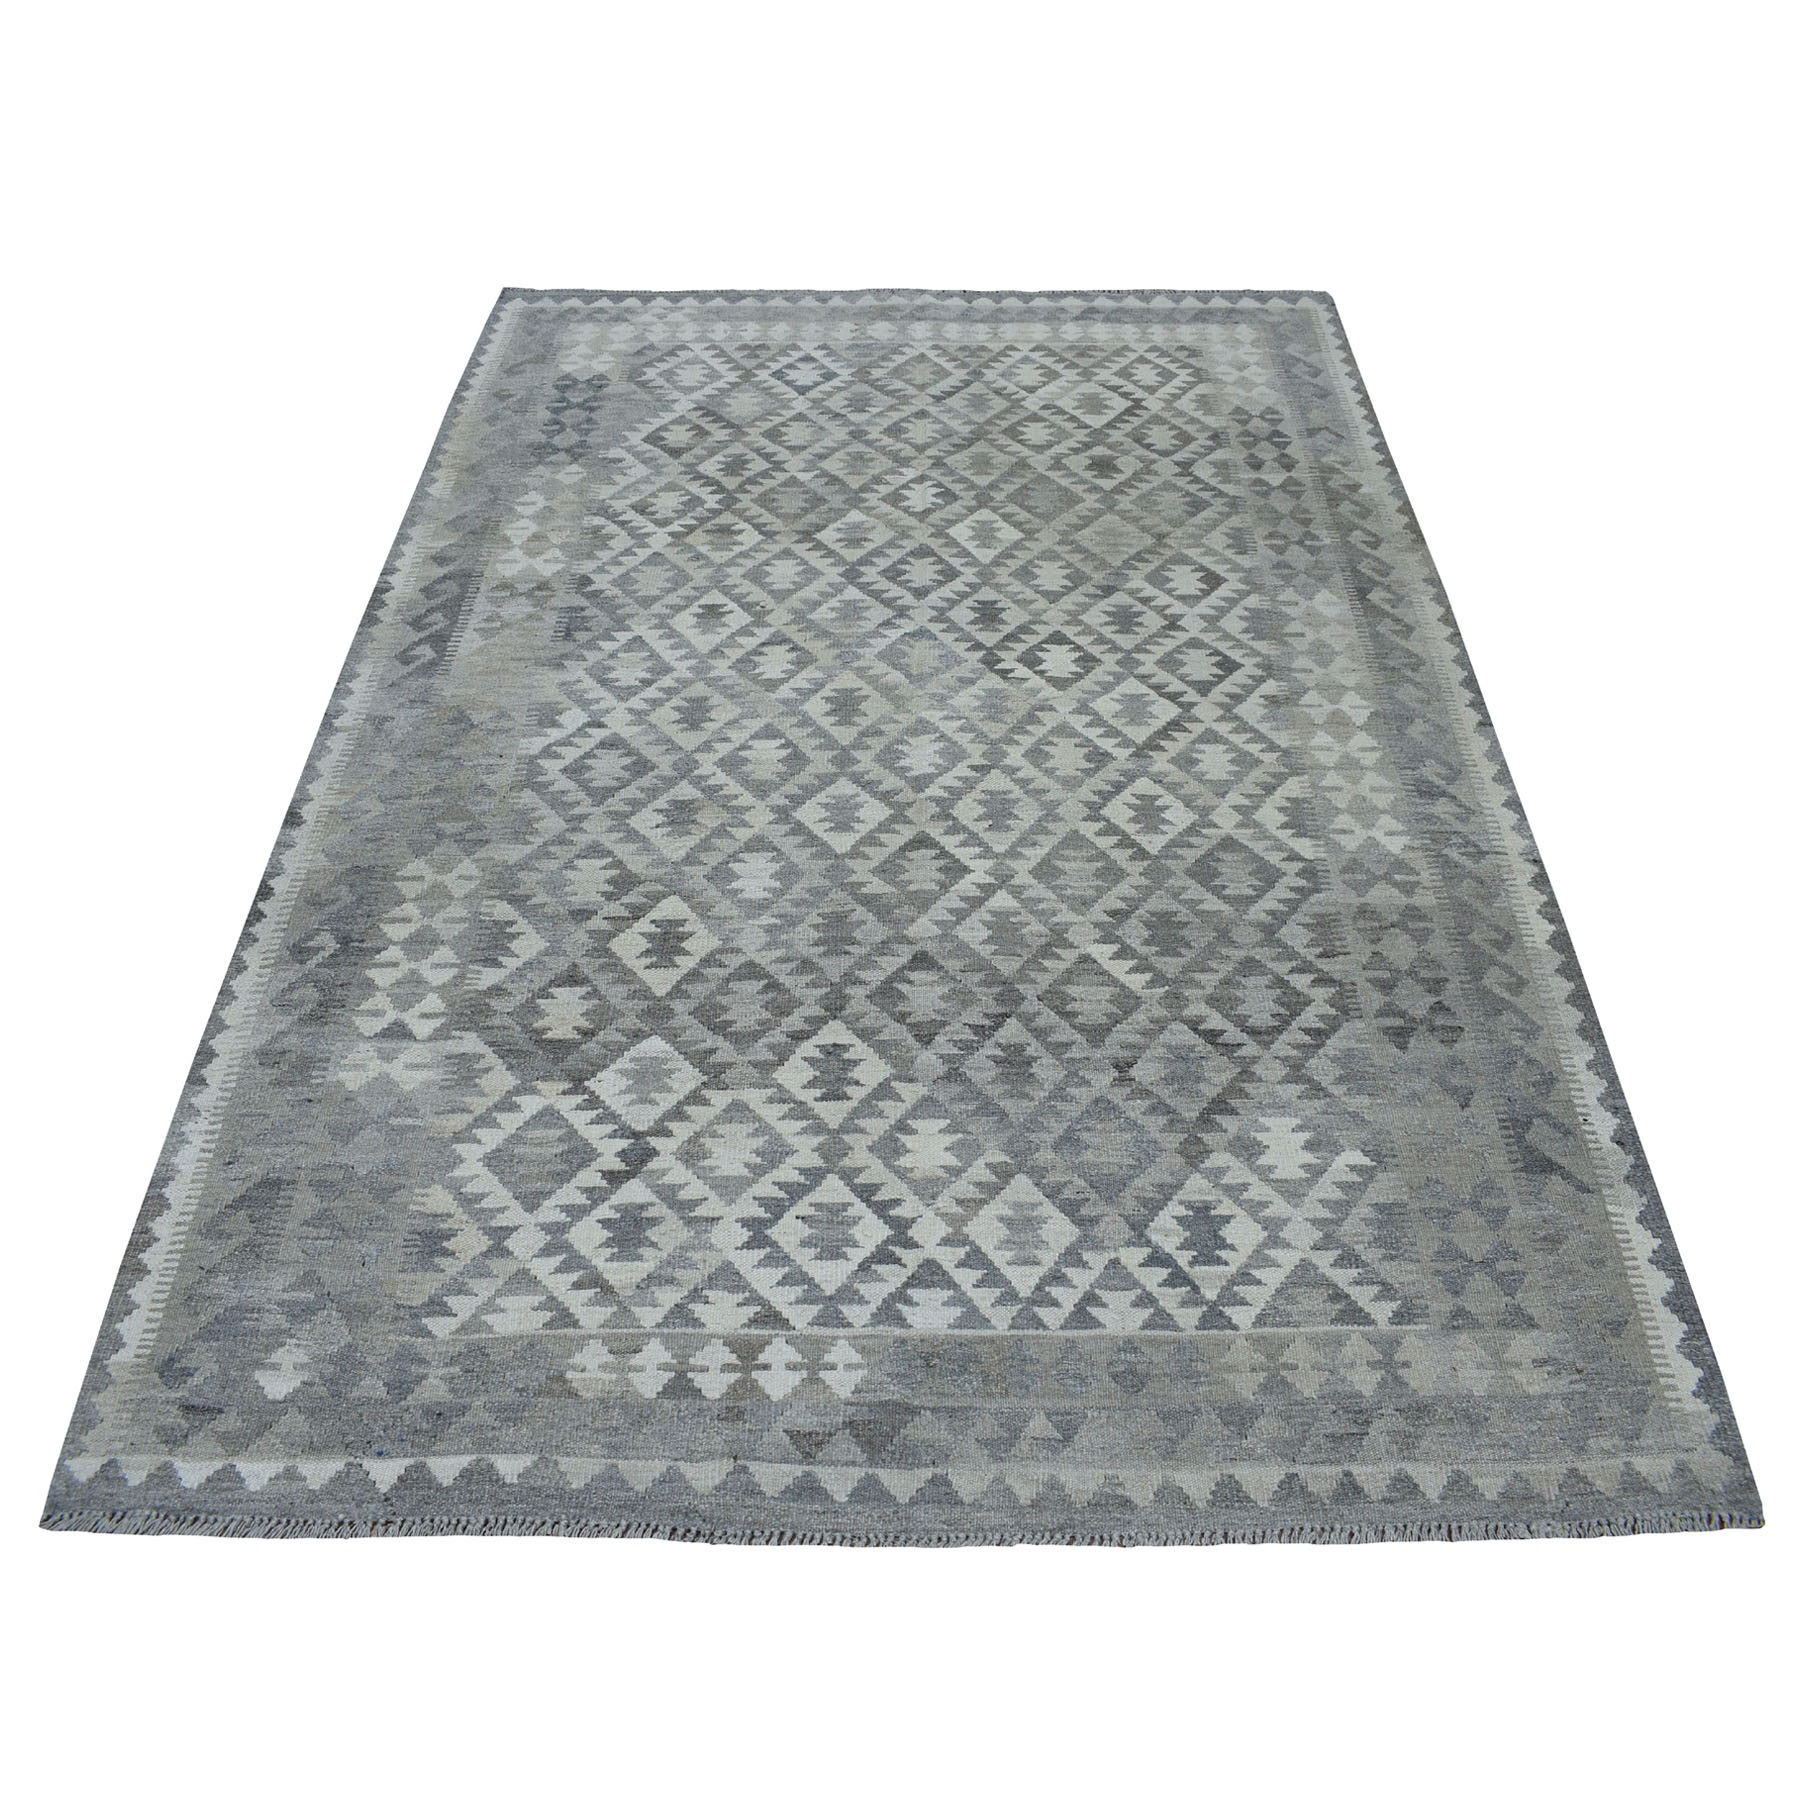 """5'8""""X8' Undyed Natural Wool Afghan Kilim Reversible Hand Woven Oriental Rug moaec0b8"""